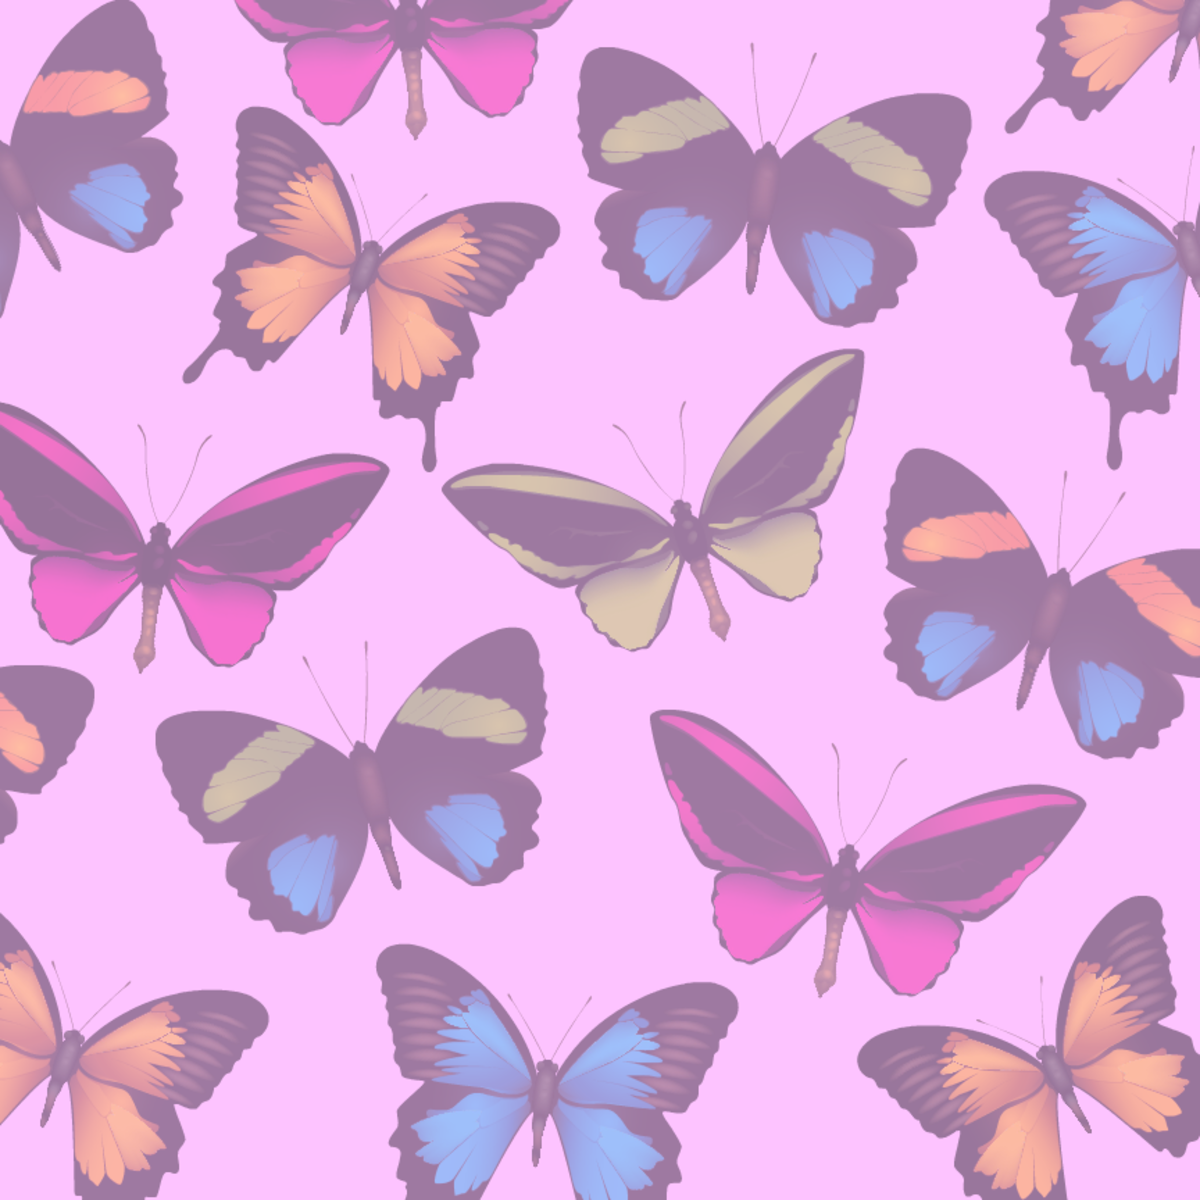 Faded butterfly scrapbooking paper -- pink background tint